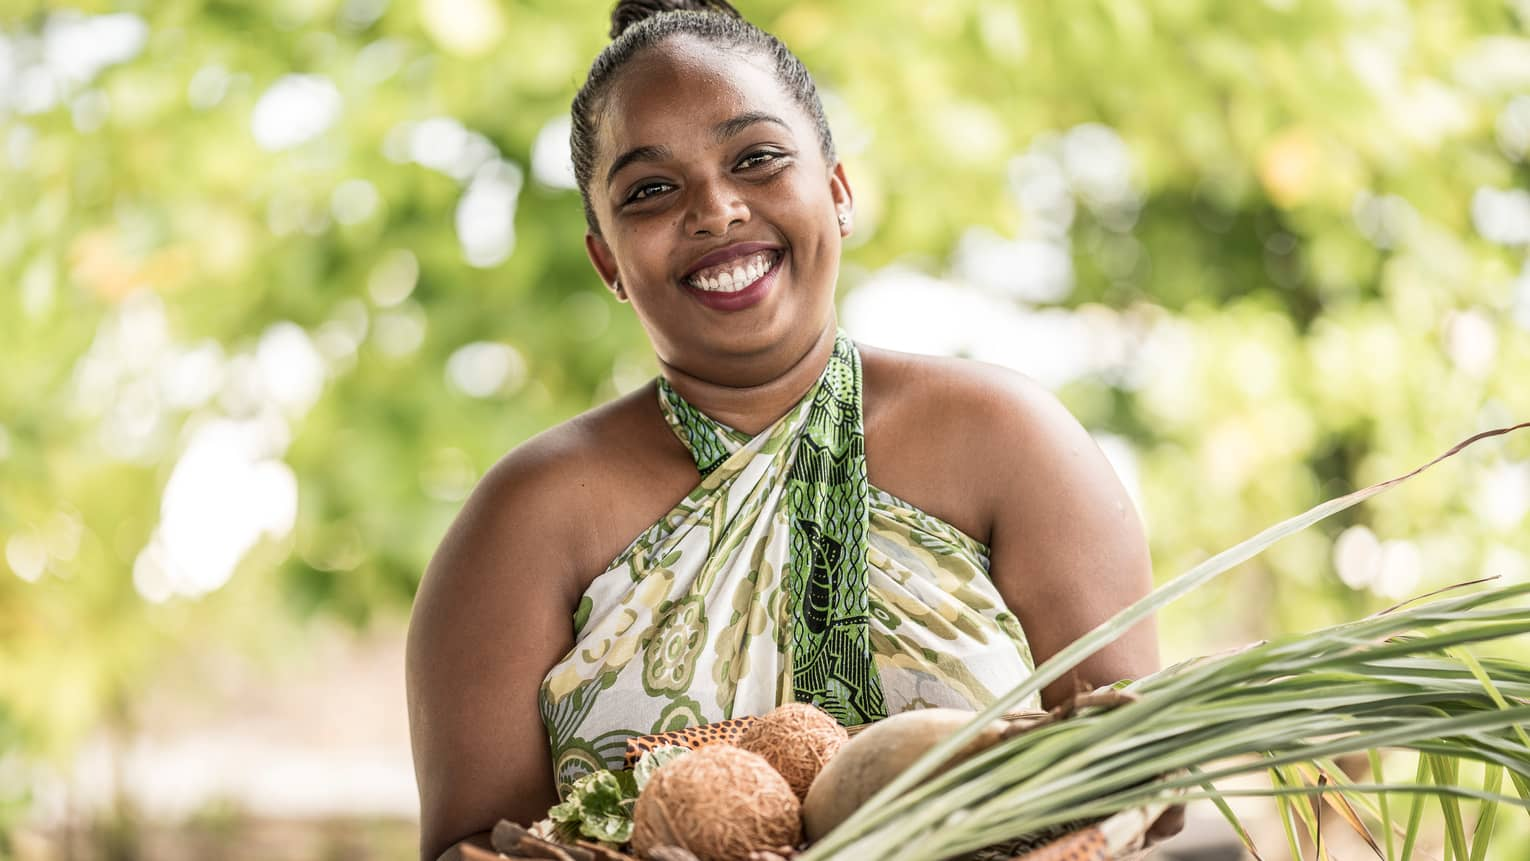 Smiling woman holds spa basket with coconuts, lemongrass, herbs